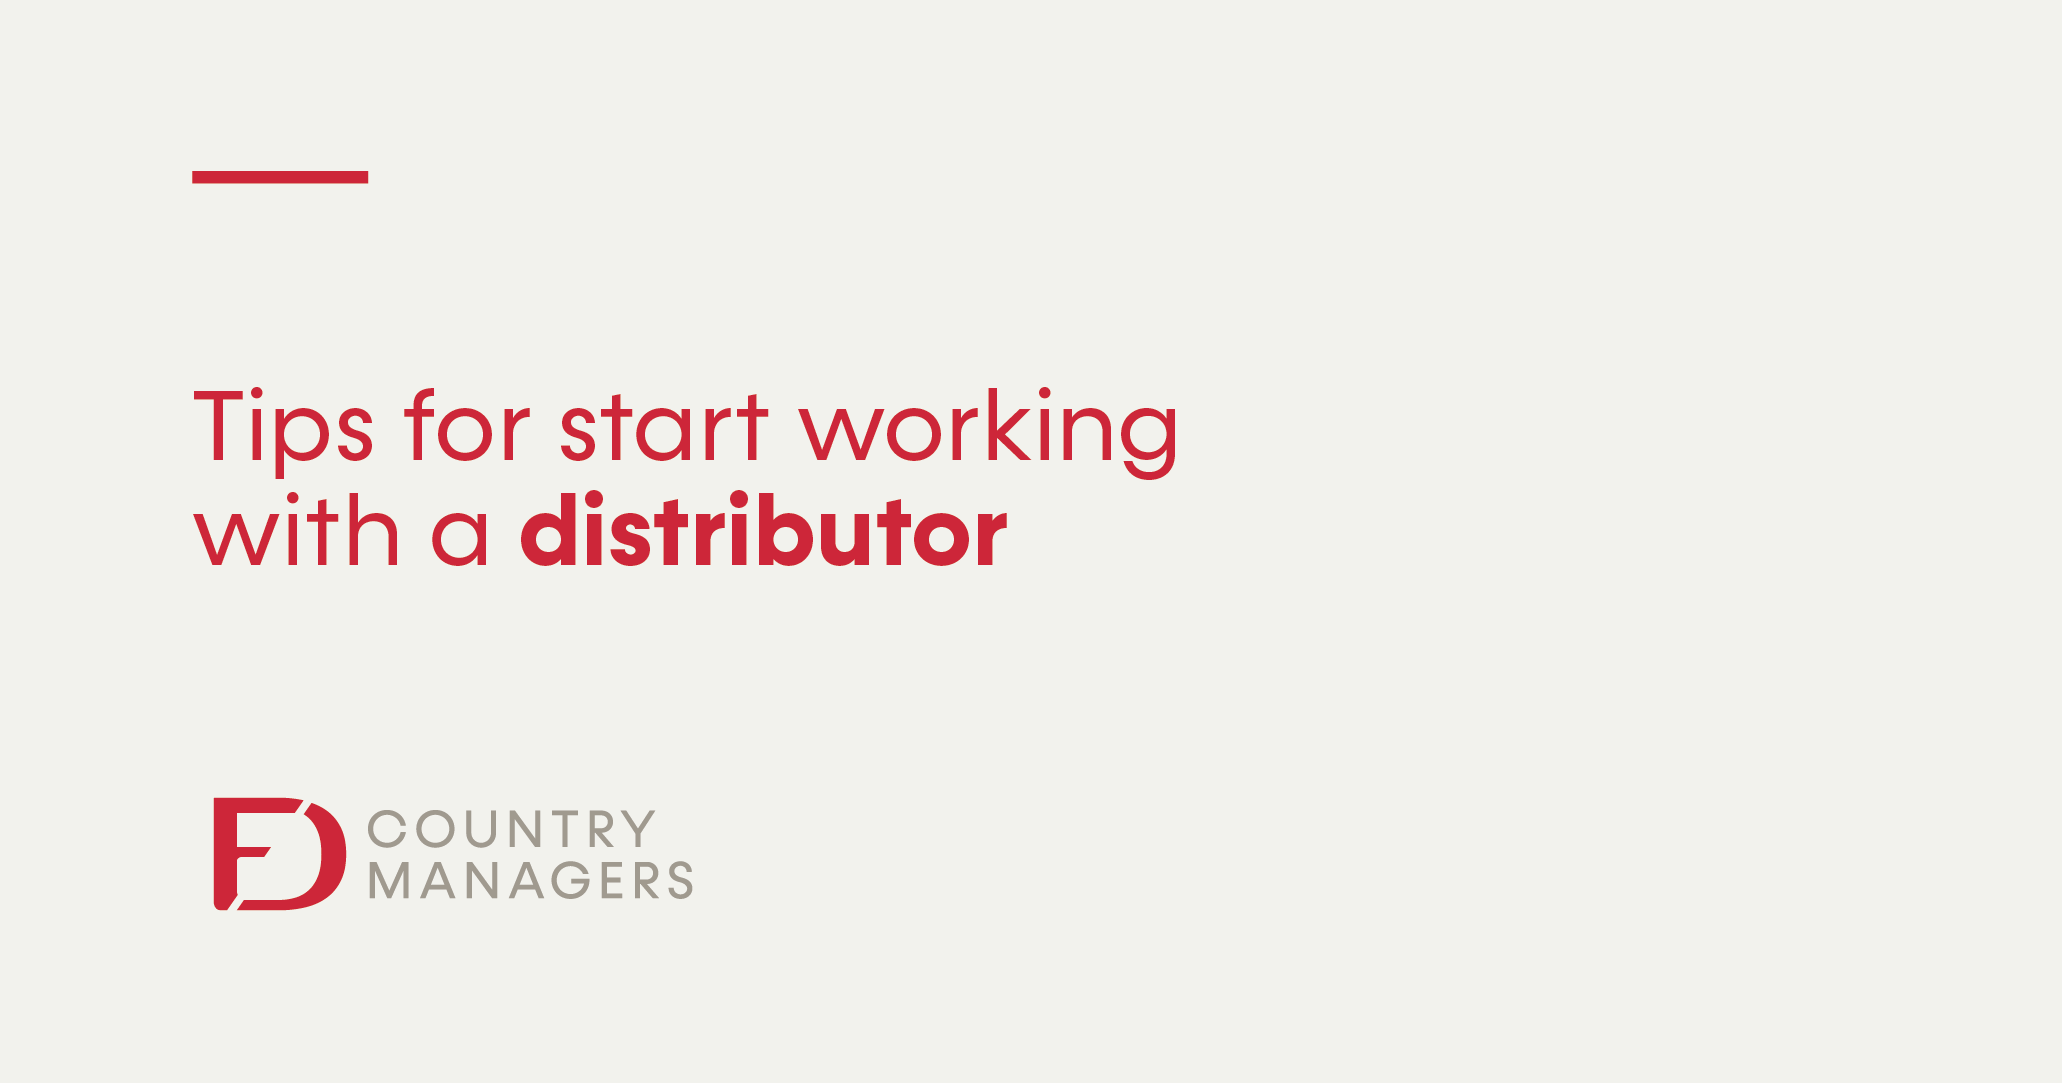 Tips for start working with a distributor